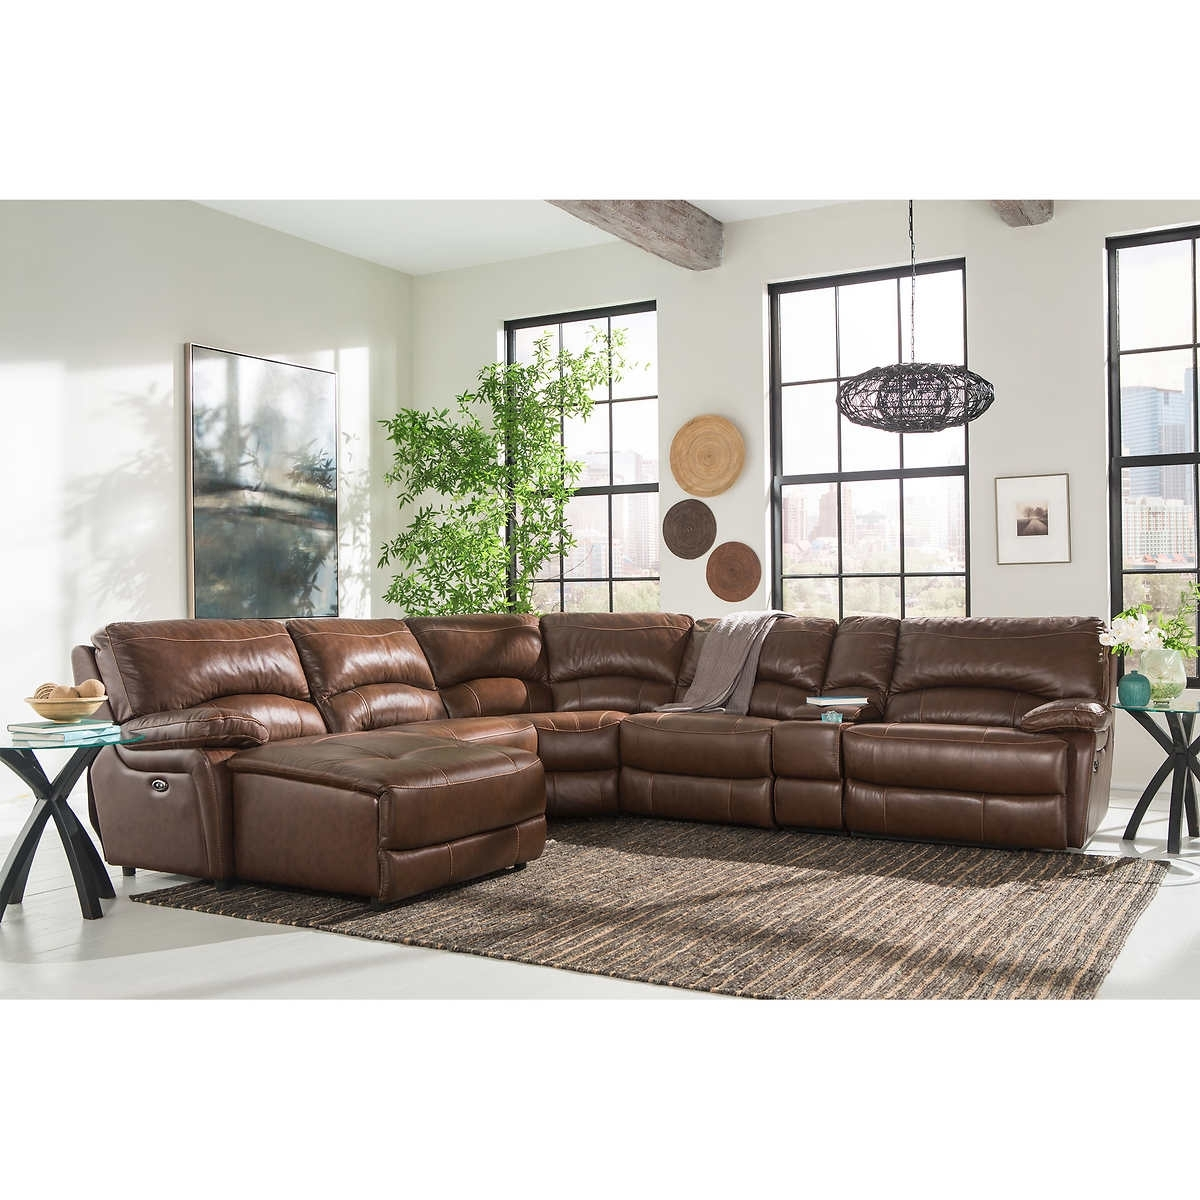 6 Piece Leather Sectional Sofas Intended For Preferred Inspirational 6 Piece Leather Sectional Sofa 56 For With 6 Piece (View 4 of 20)